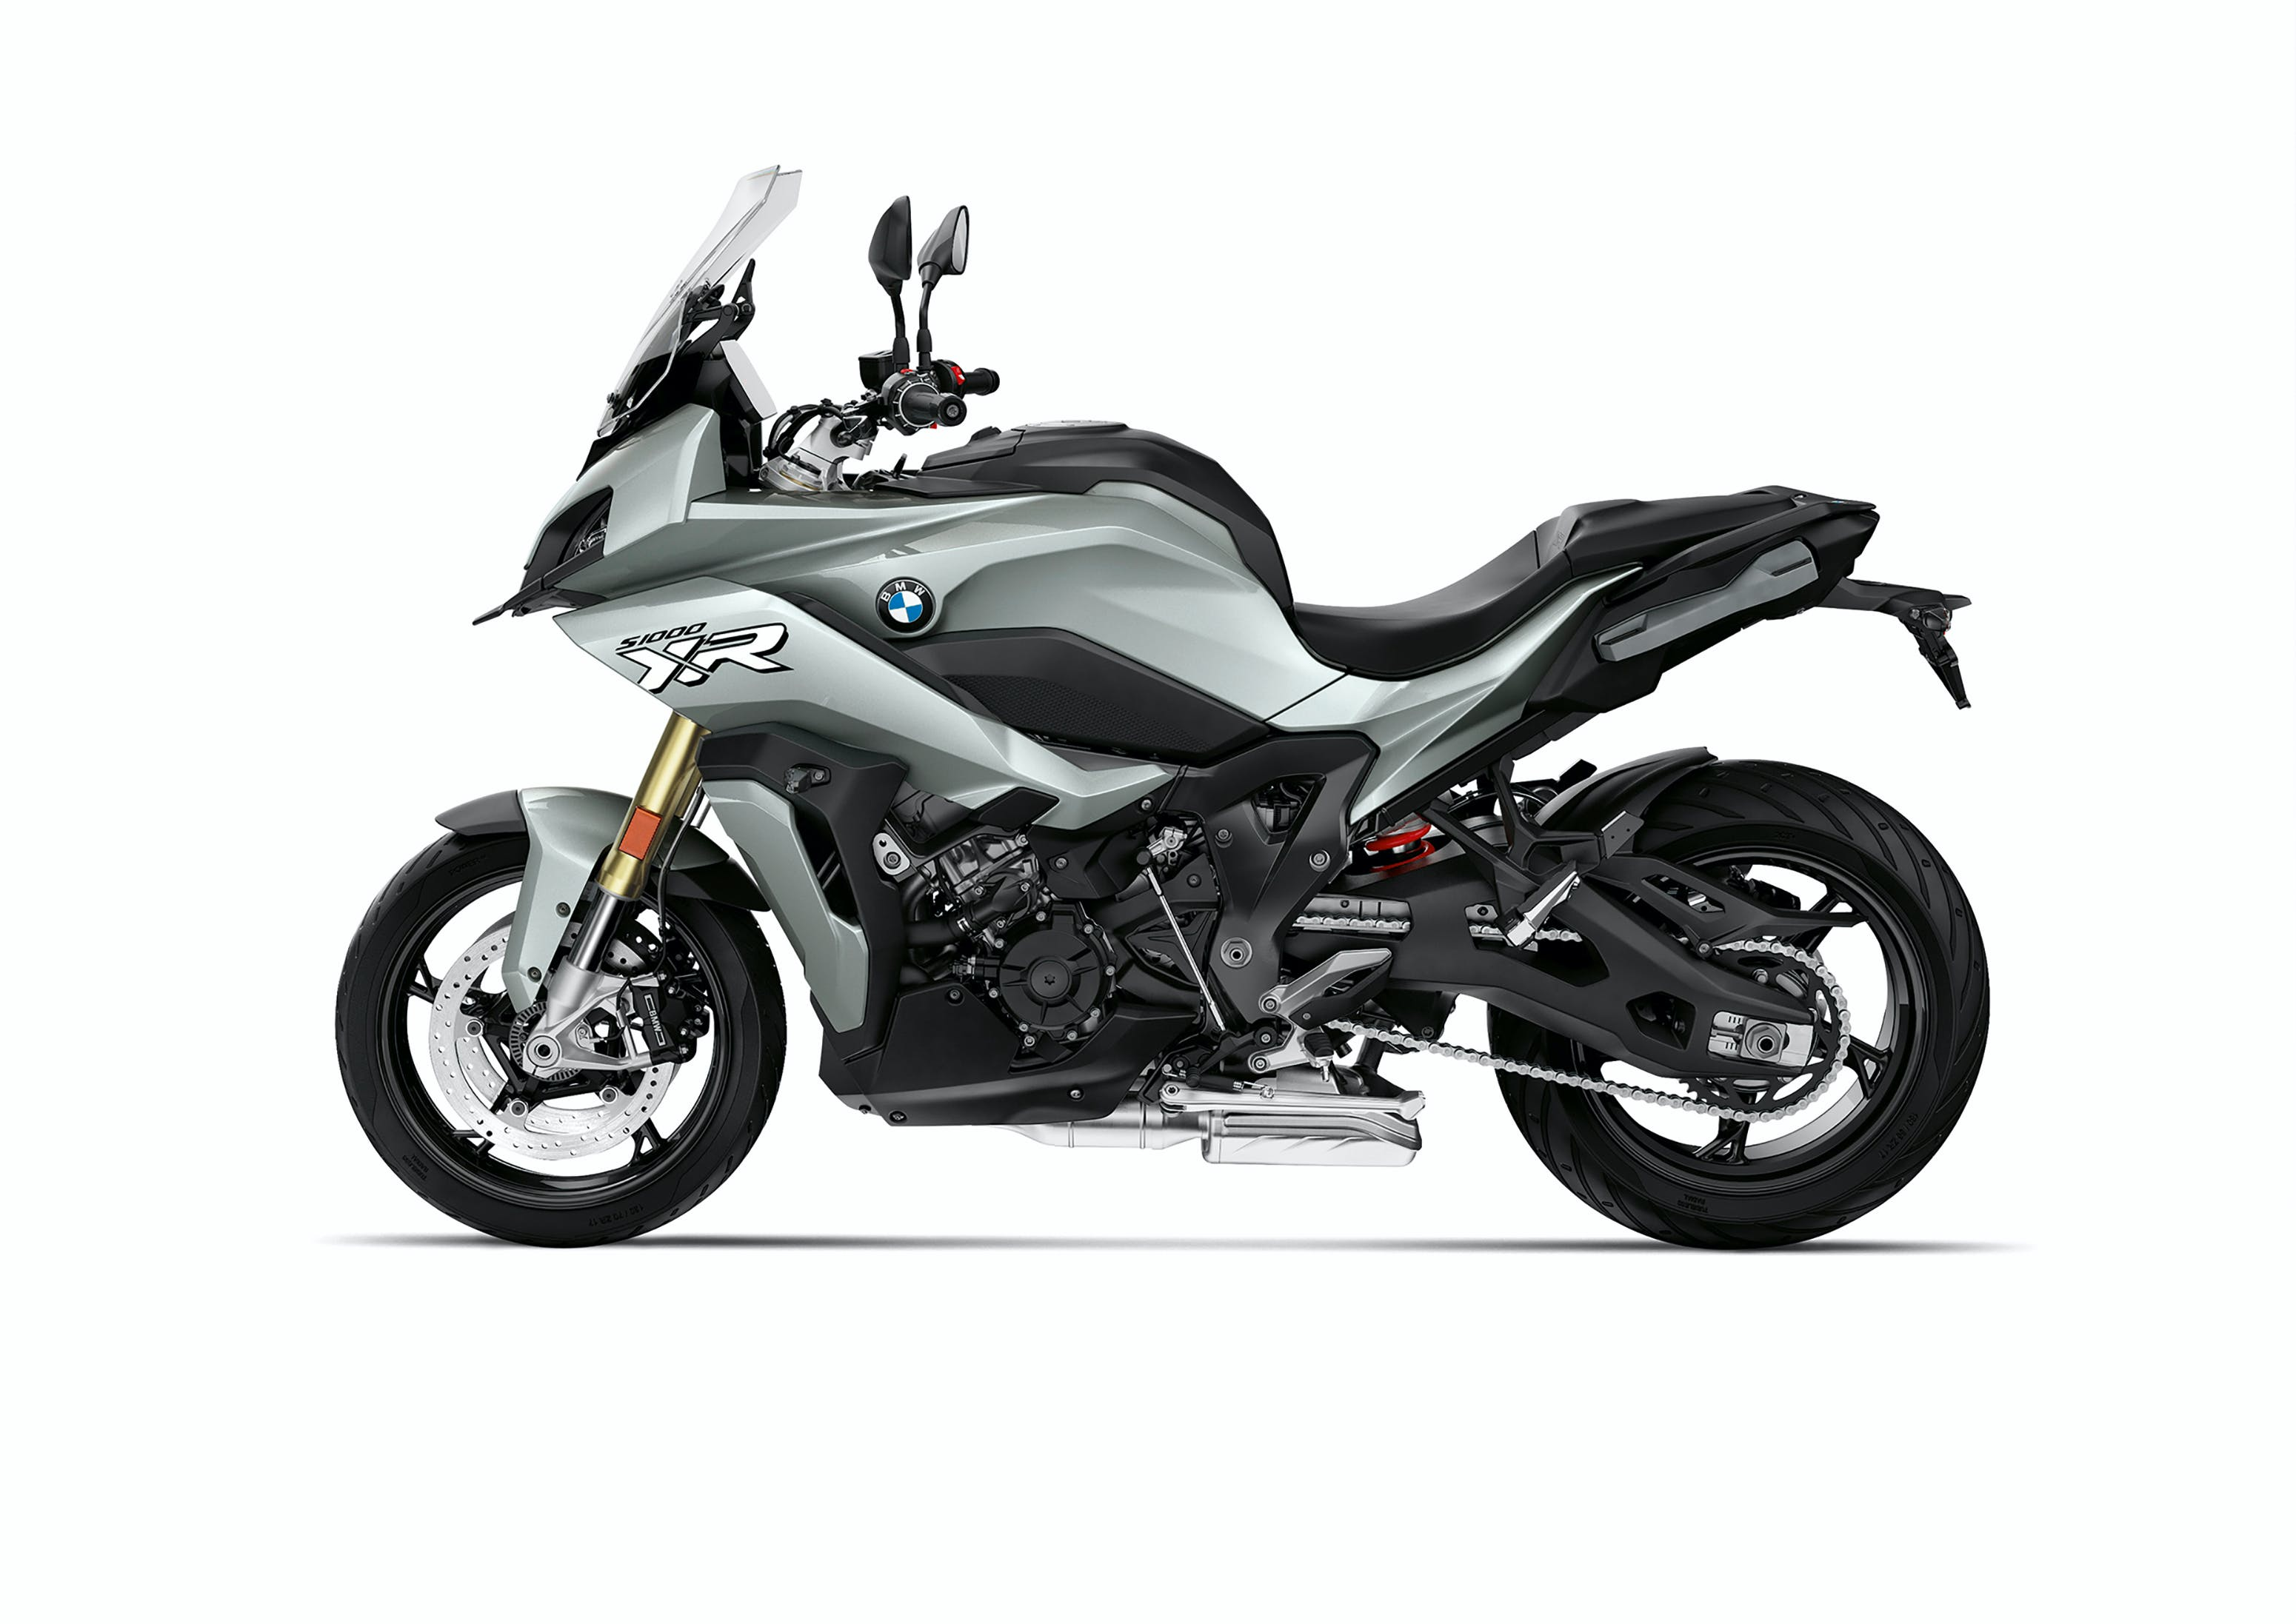 BMW S 1000 XR in Ice Grey colour